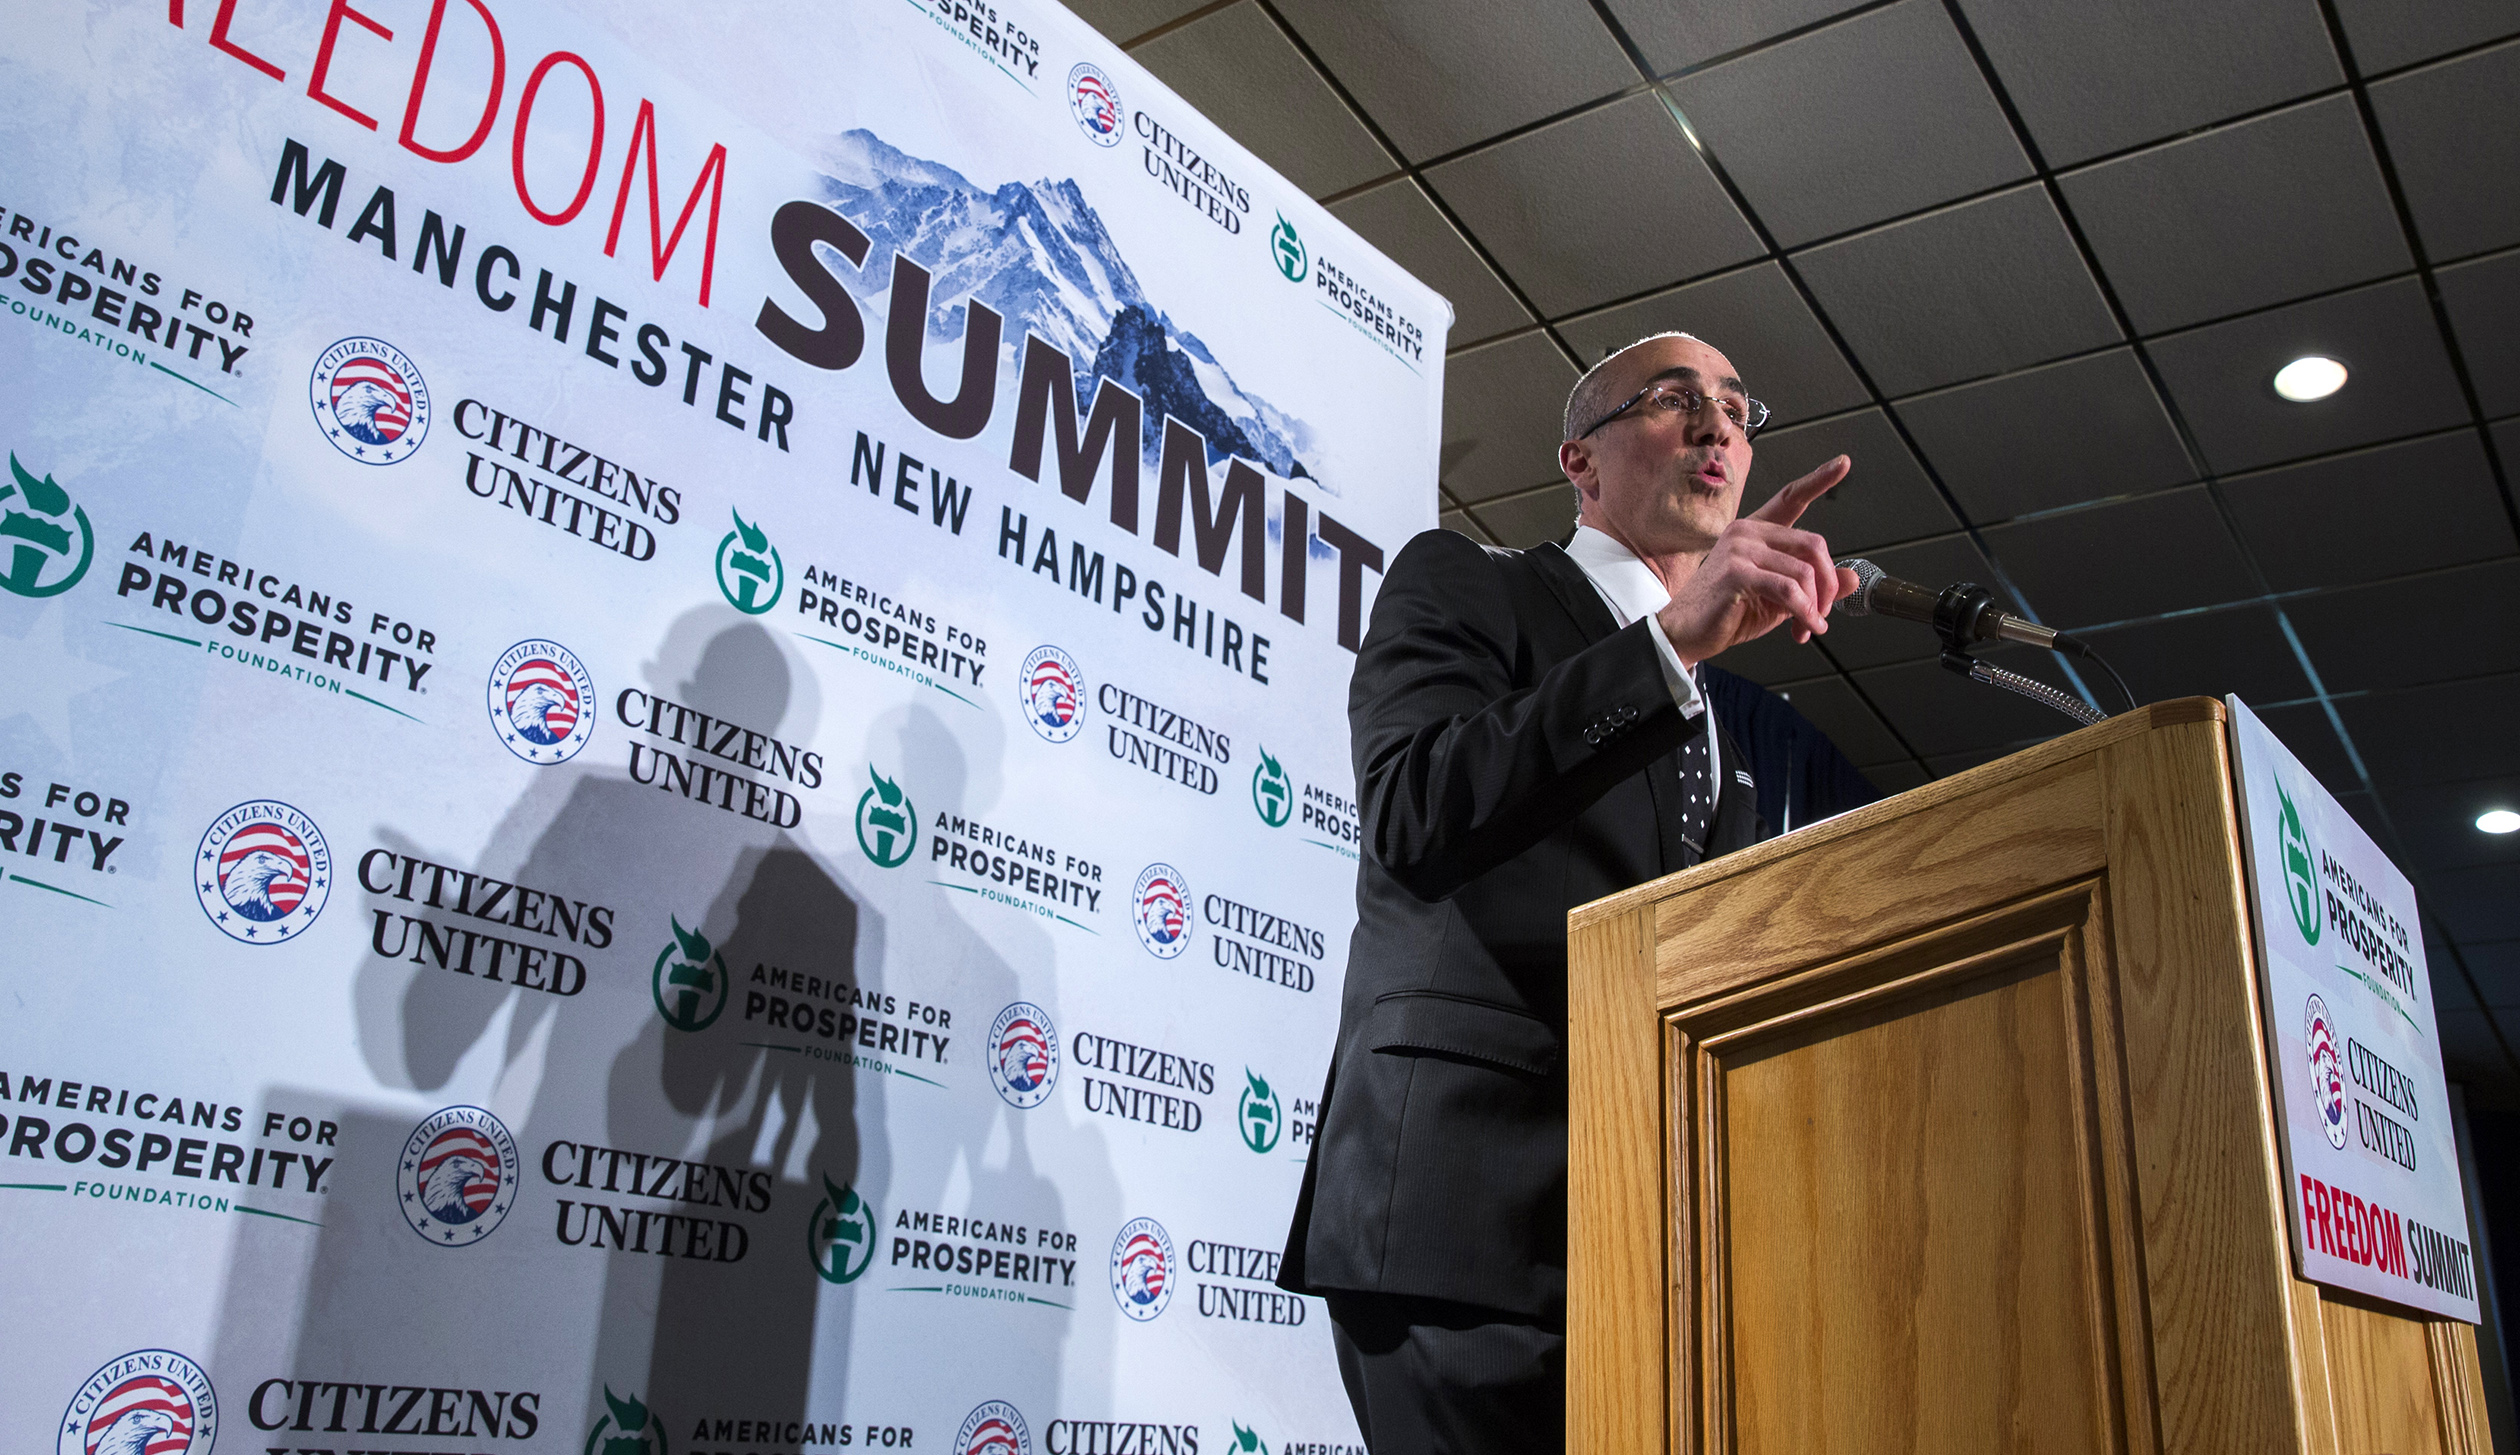 Economist Arthur Brooks speaks during the inaugural Freedom Summit meeting for conservative speakers in Manchester